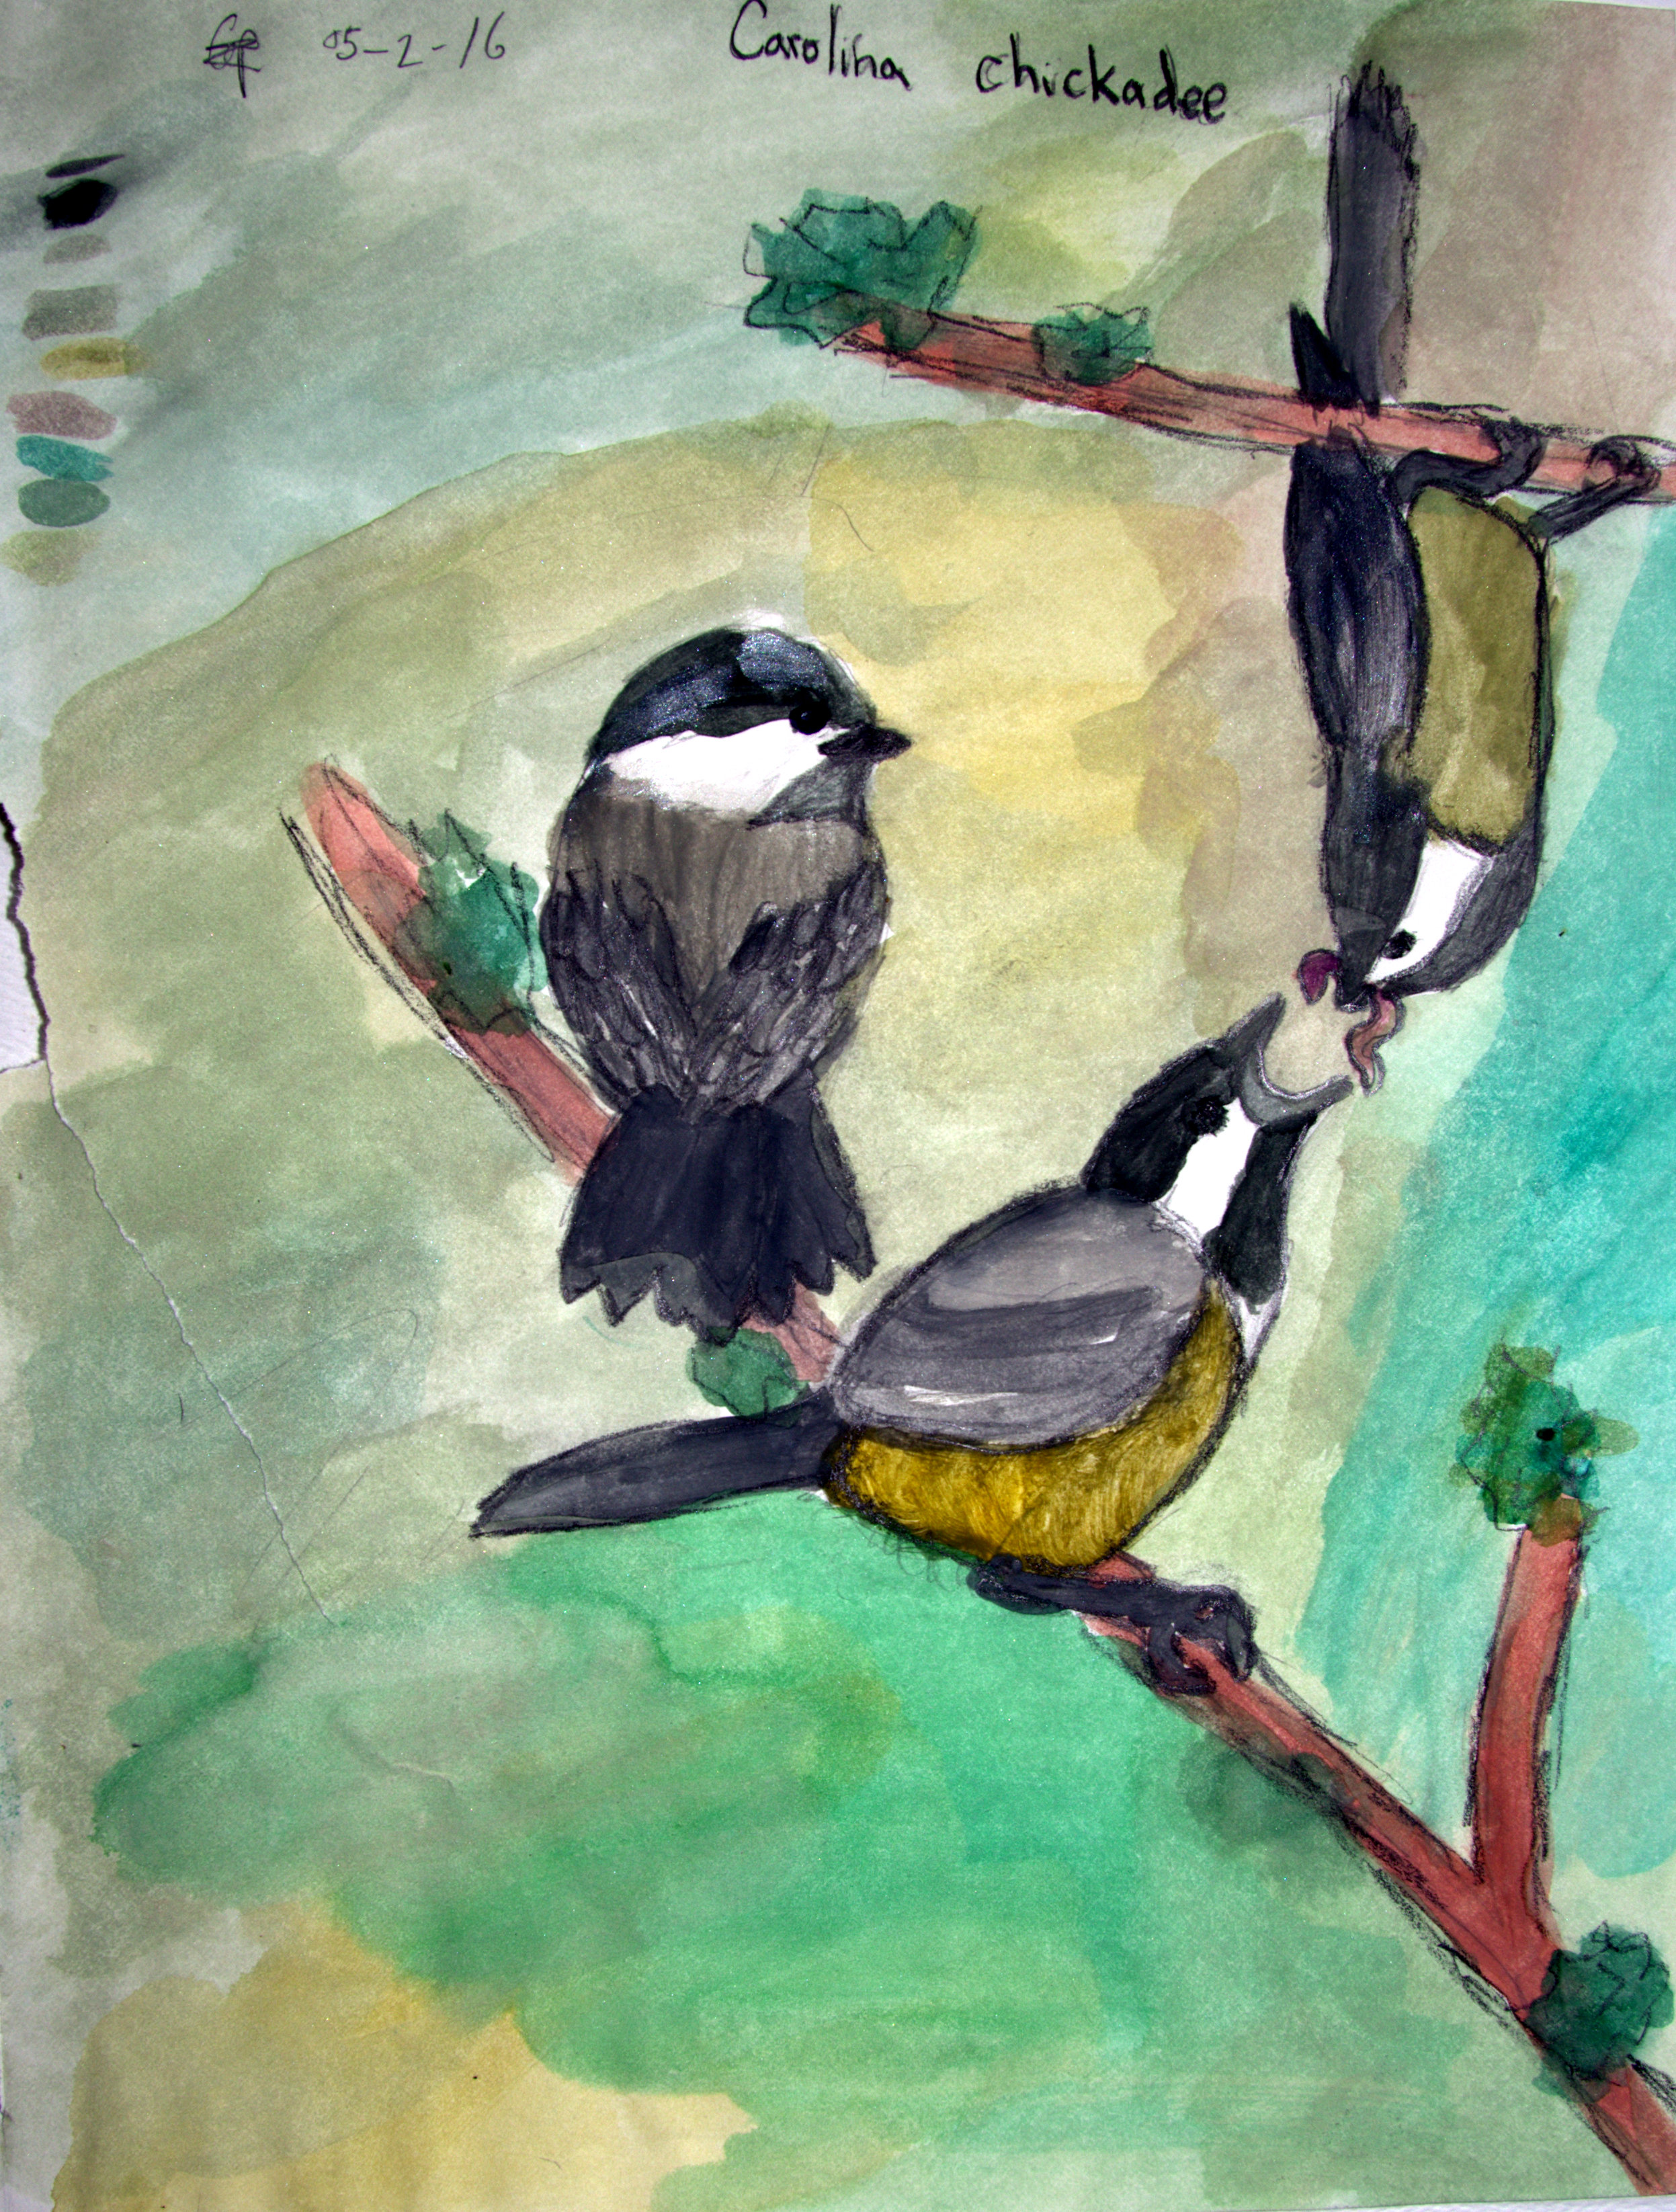 Chickadees, Carolina Perez, Age 10